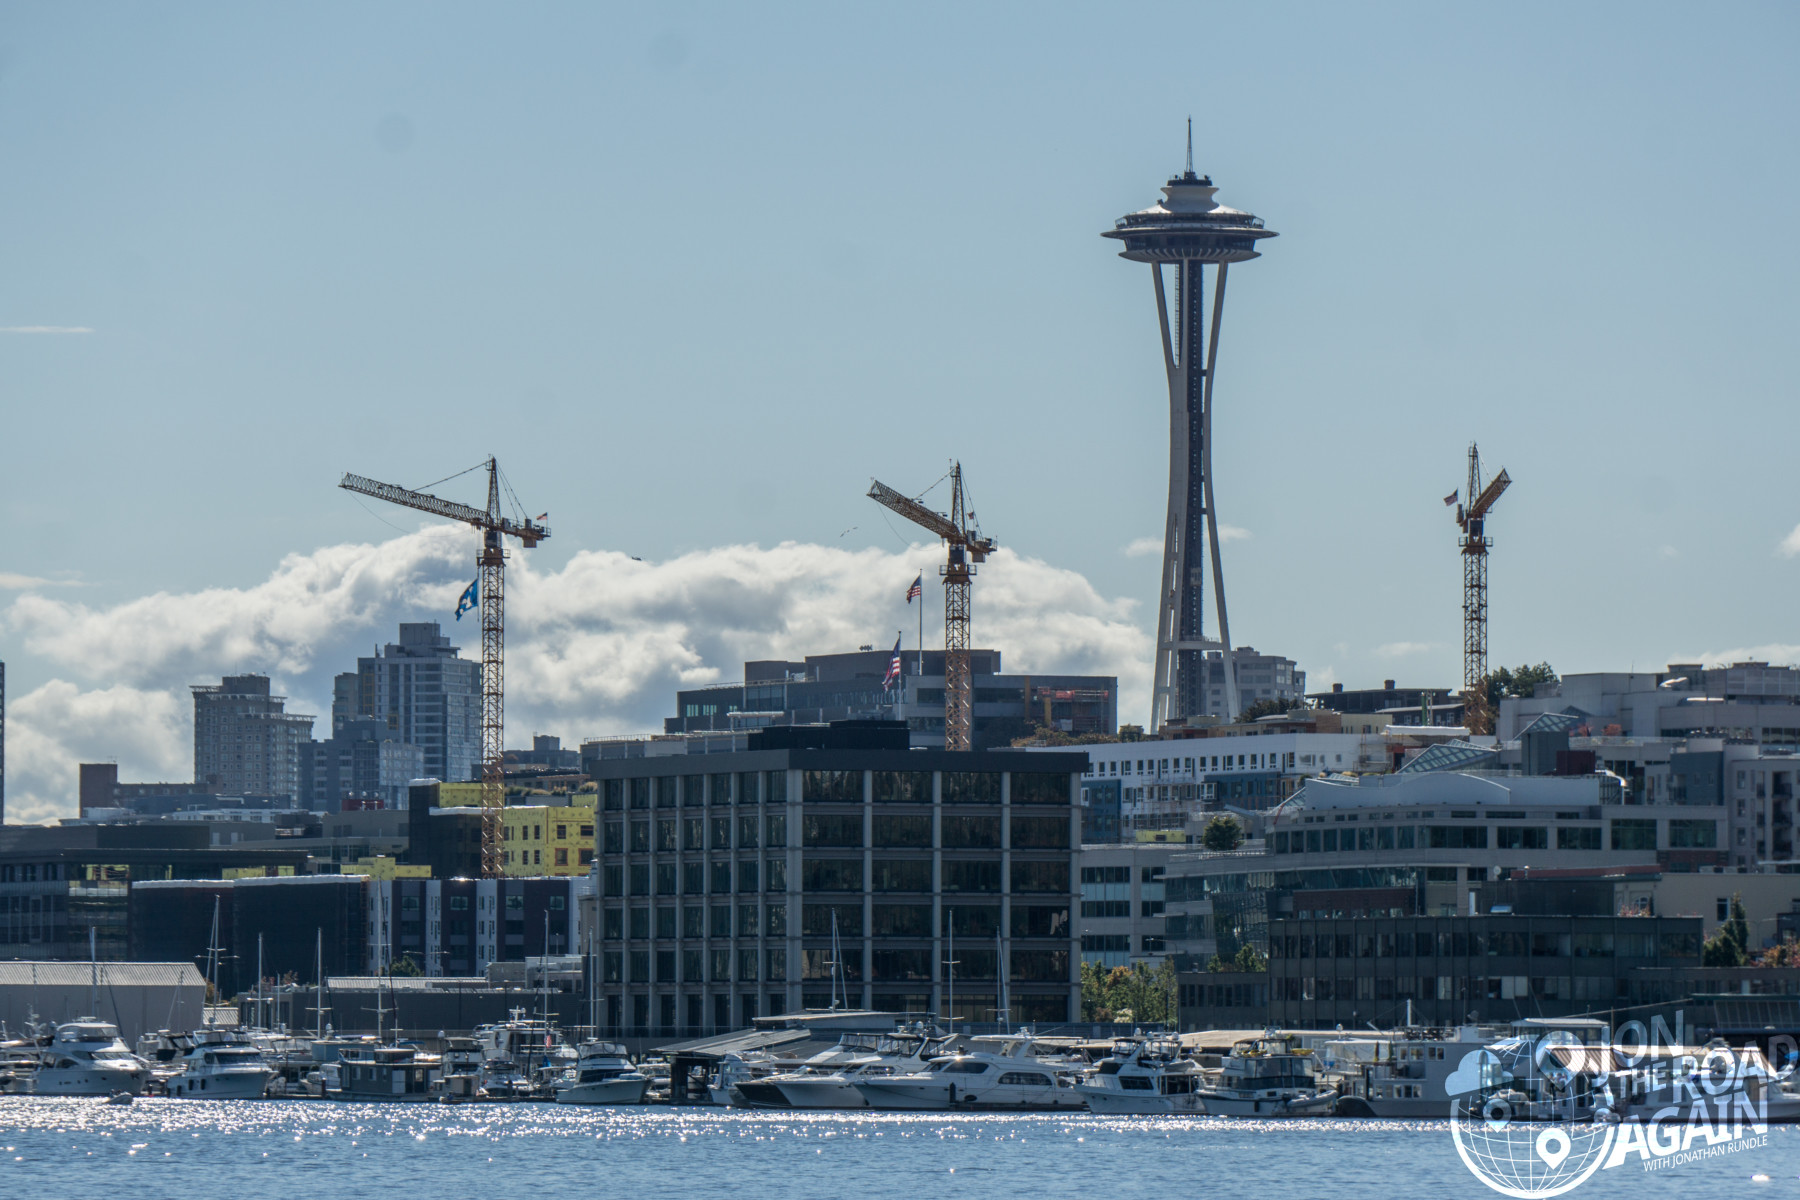 Space Needle with construction cranes